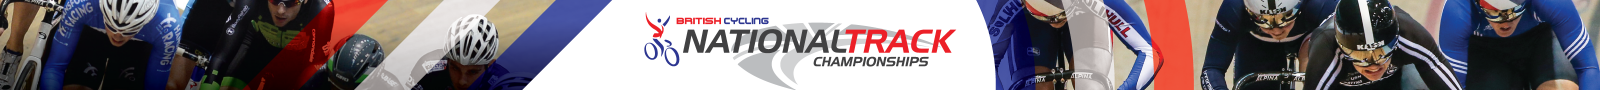 National Track Championships 2015